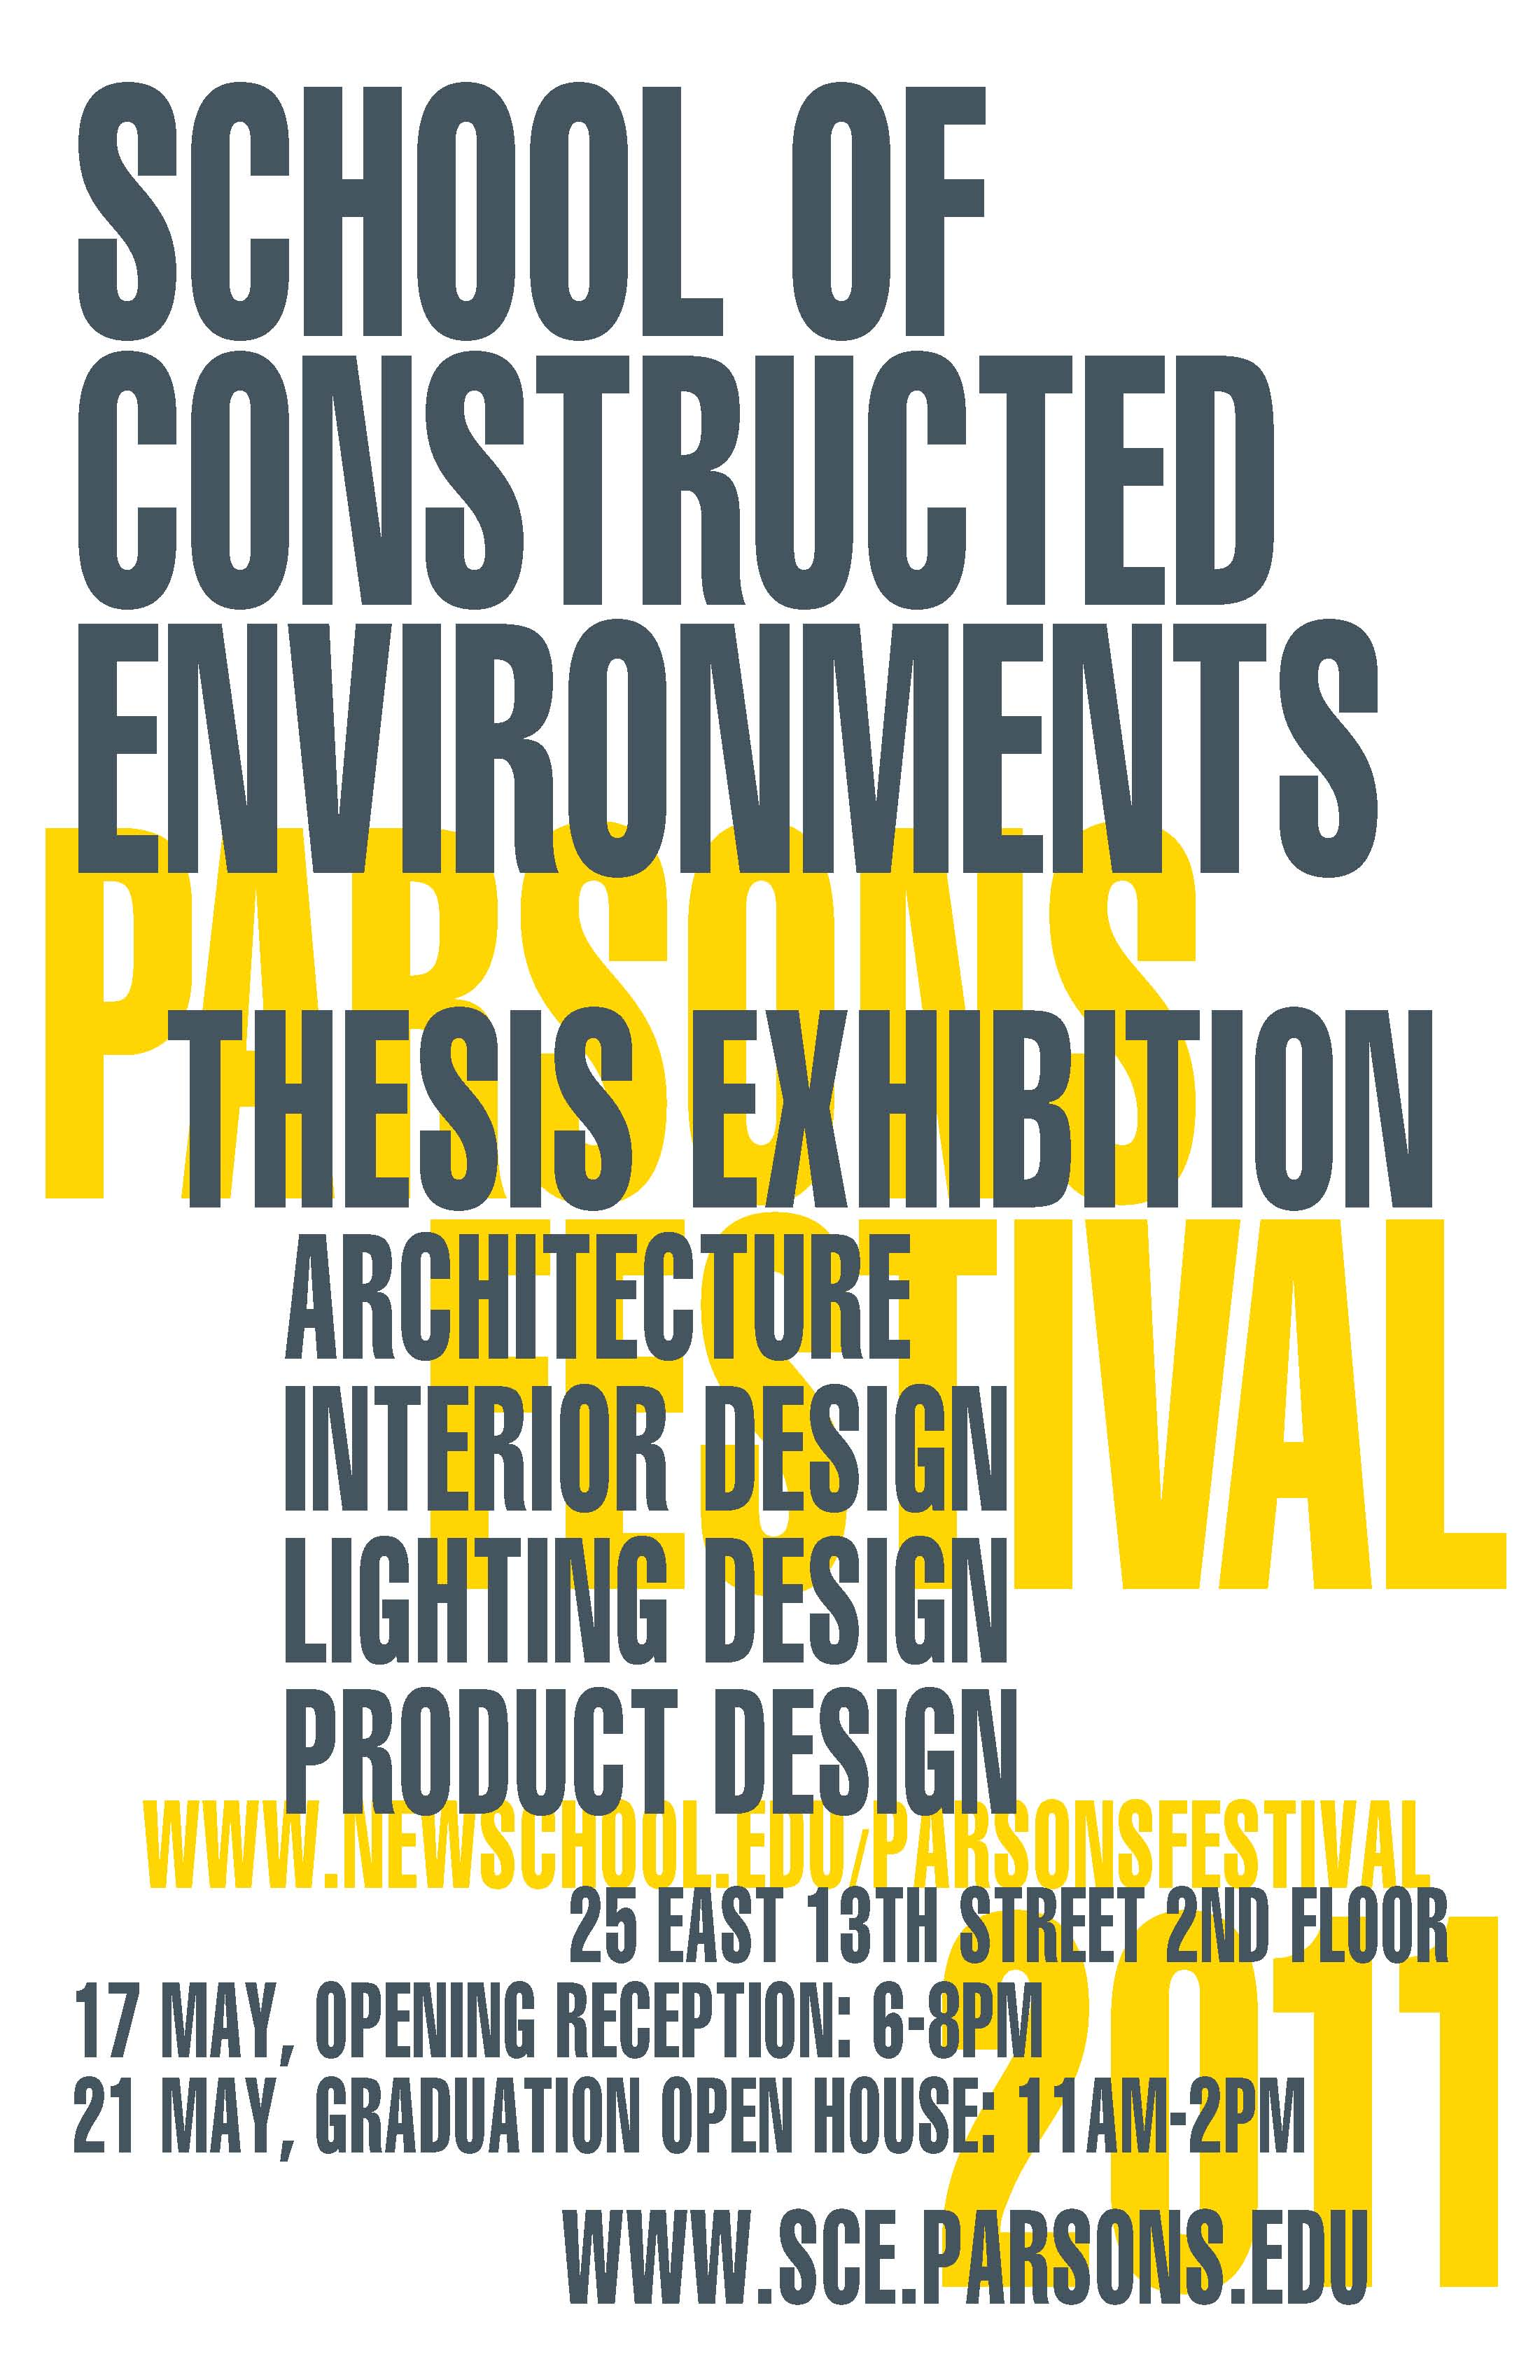 parsons product design thesis show Society of illustrators student scholarship show the illustration program at parsons school of design teaches students to be toy and product design.